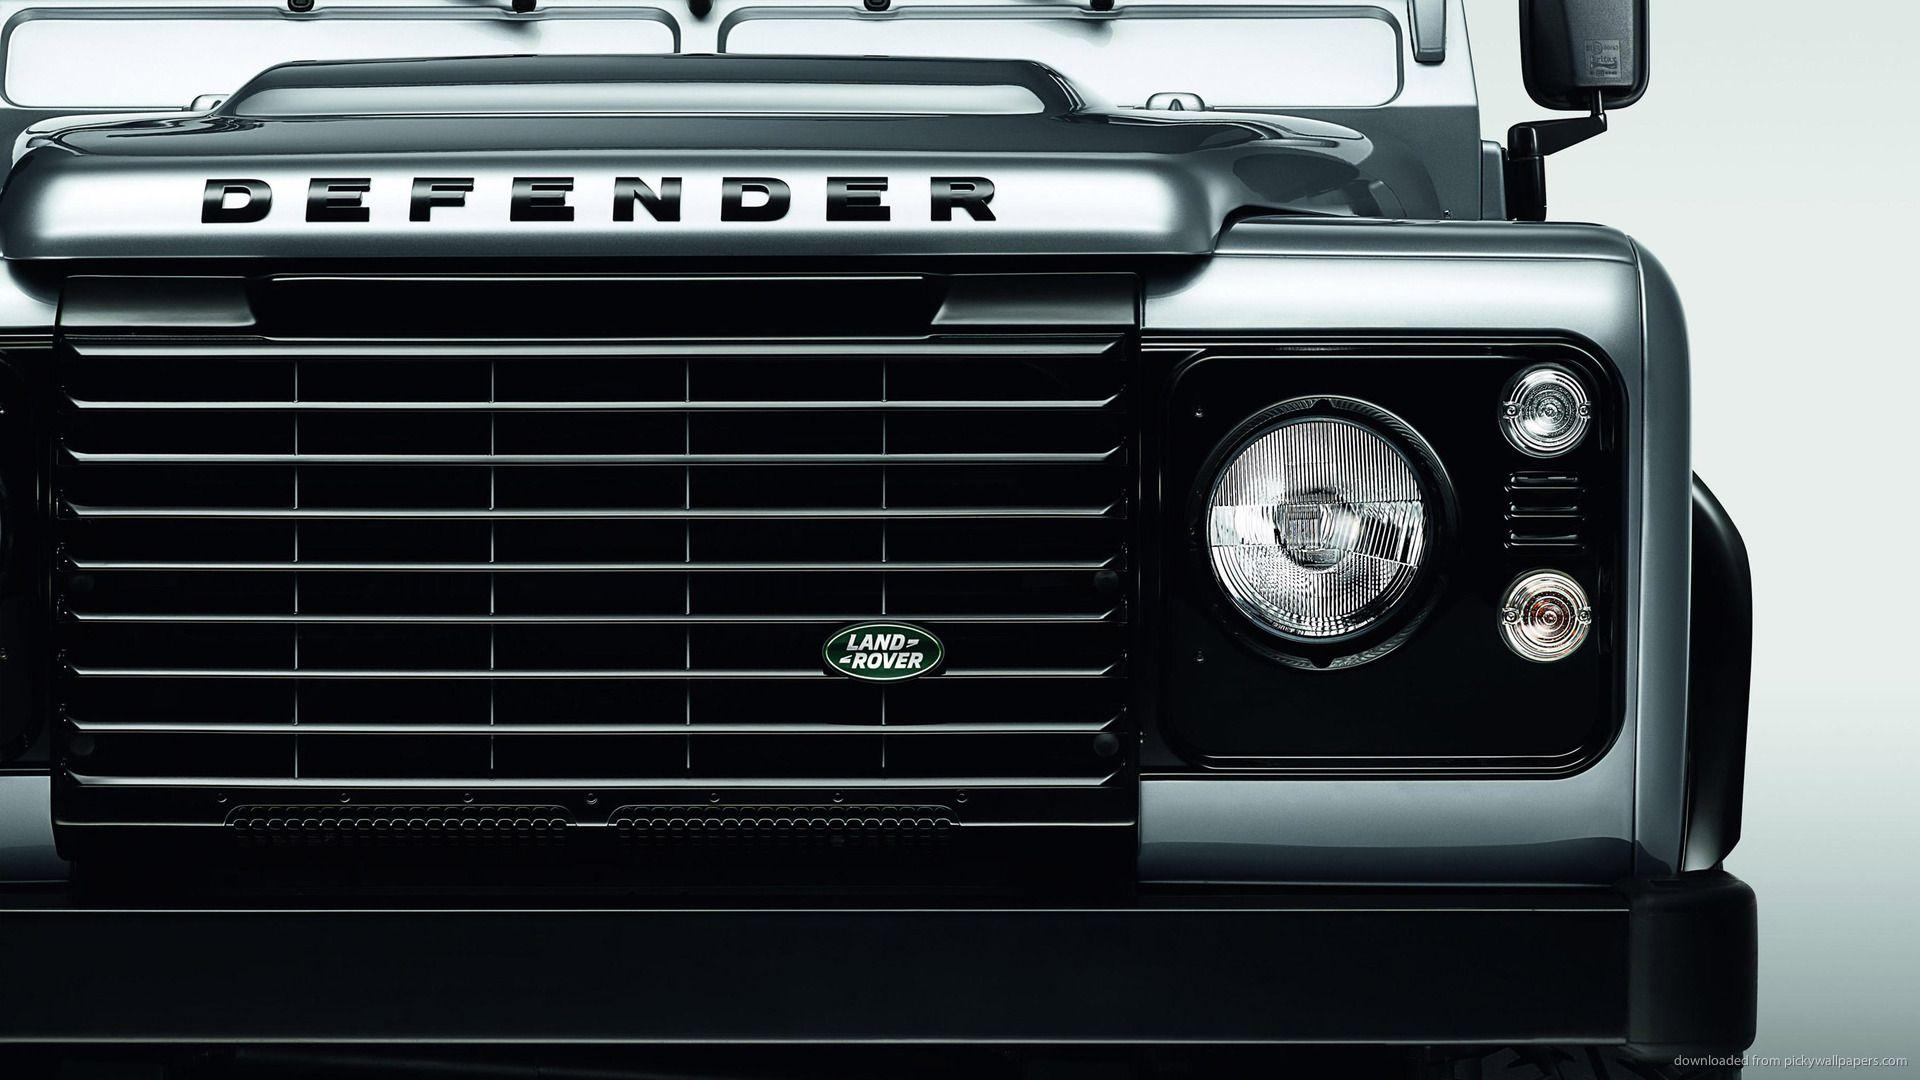 Download 1920x1080 Silver Land Rover Defender XS Radiator Grille